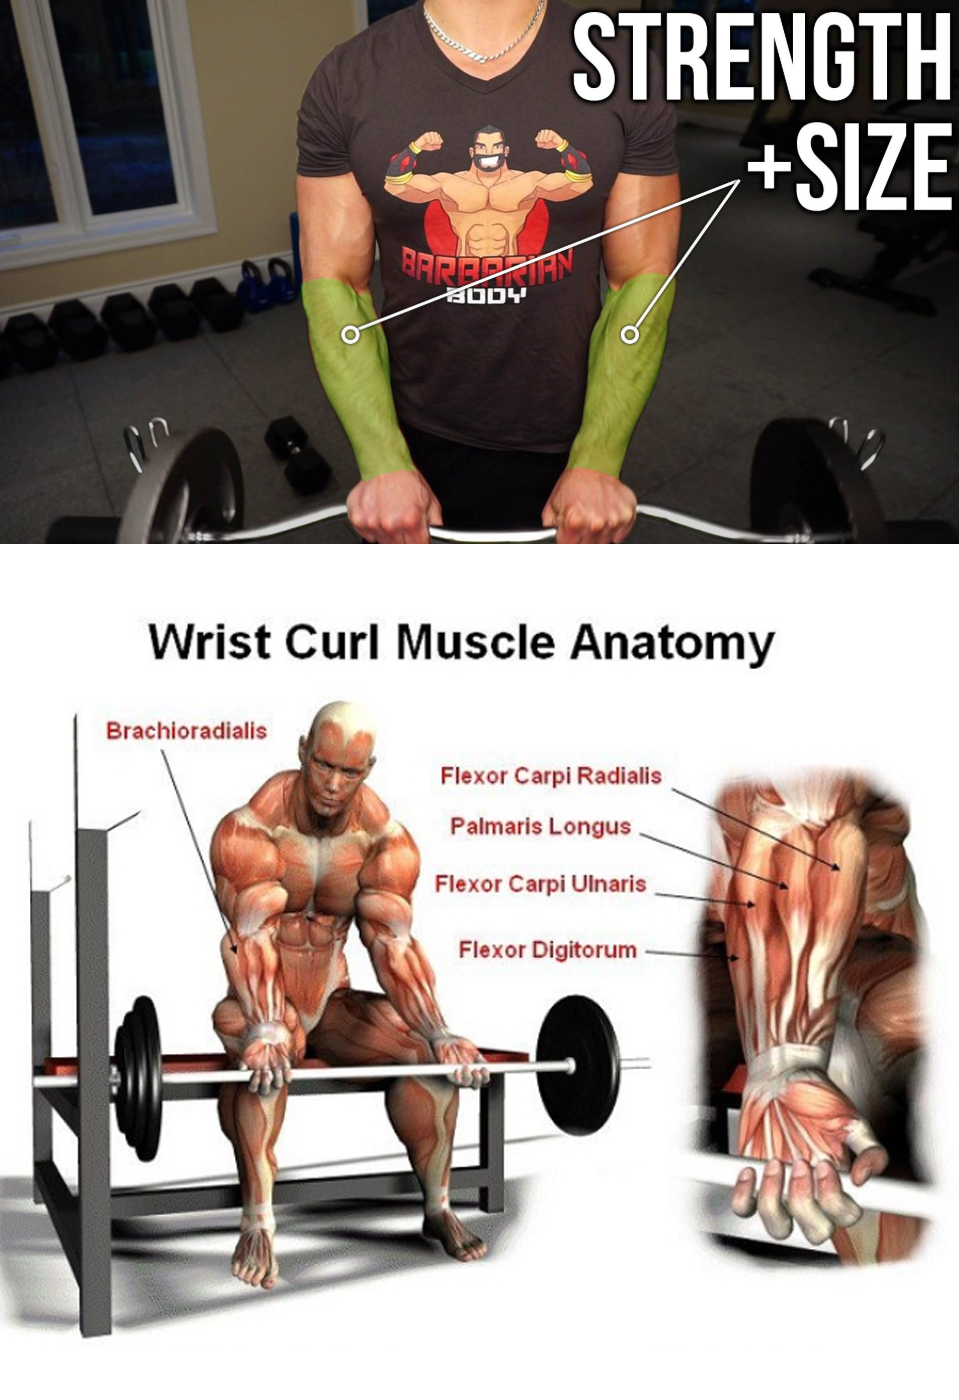 Wrist Curl Muscle Anatomy